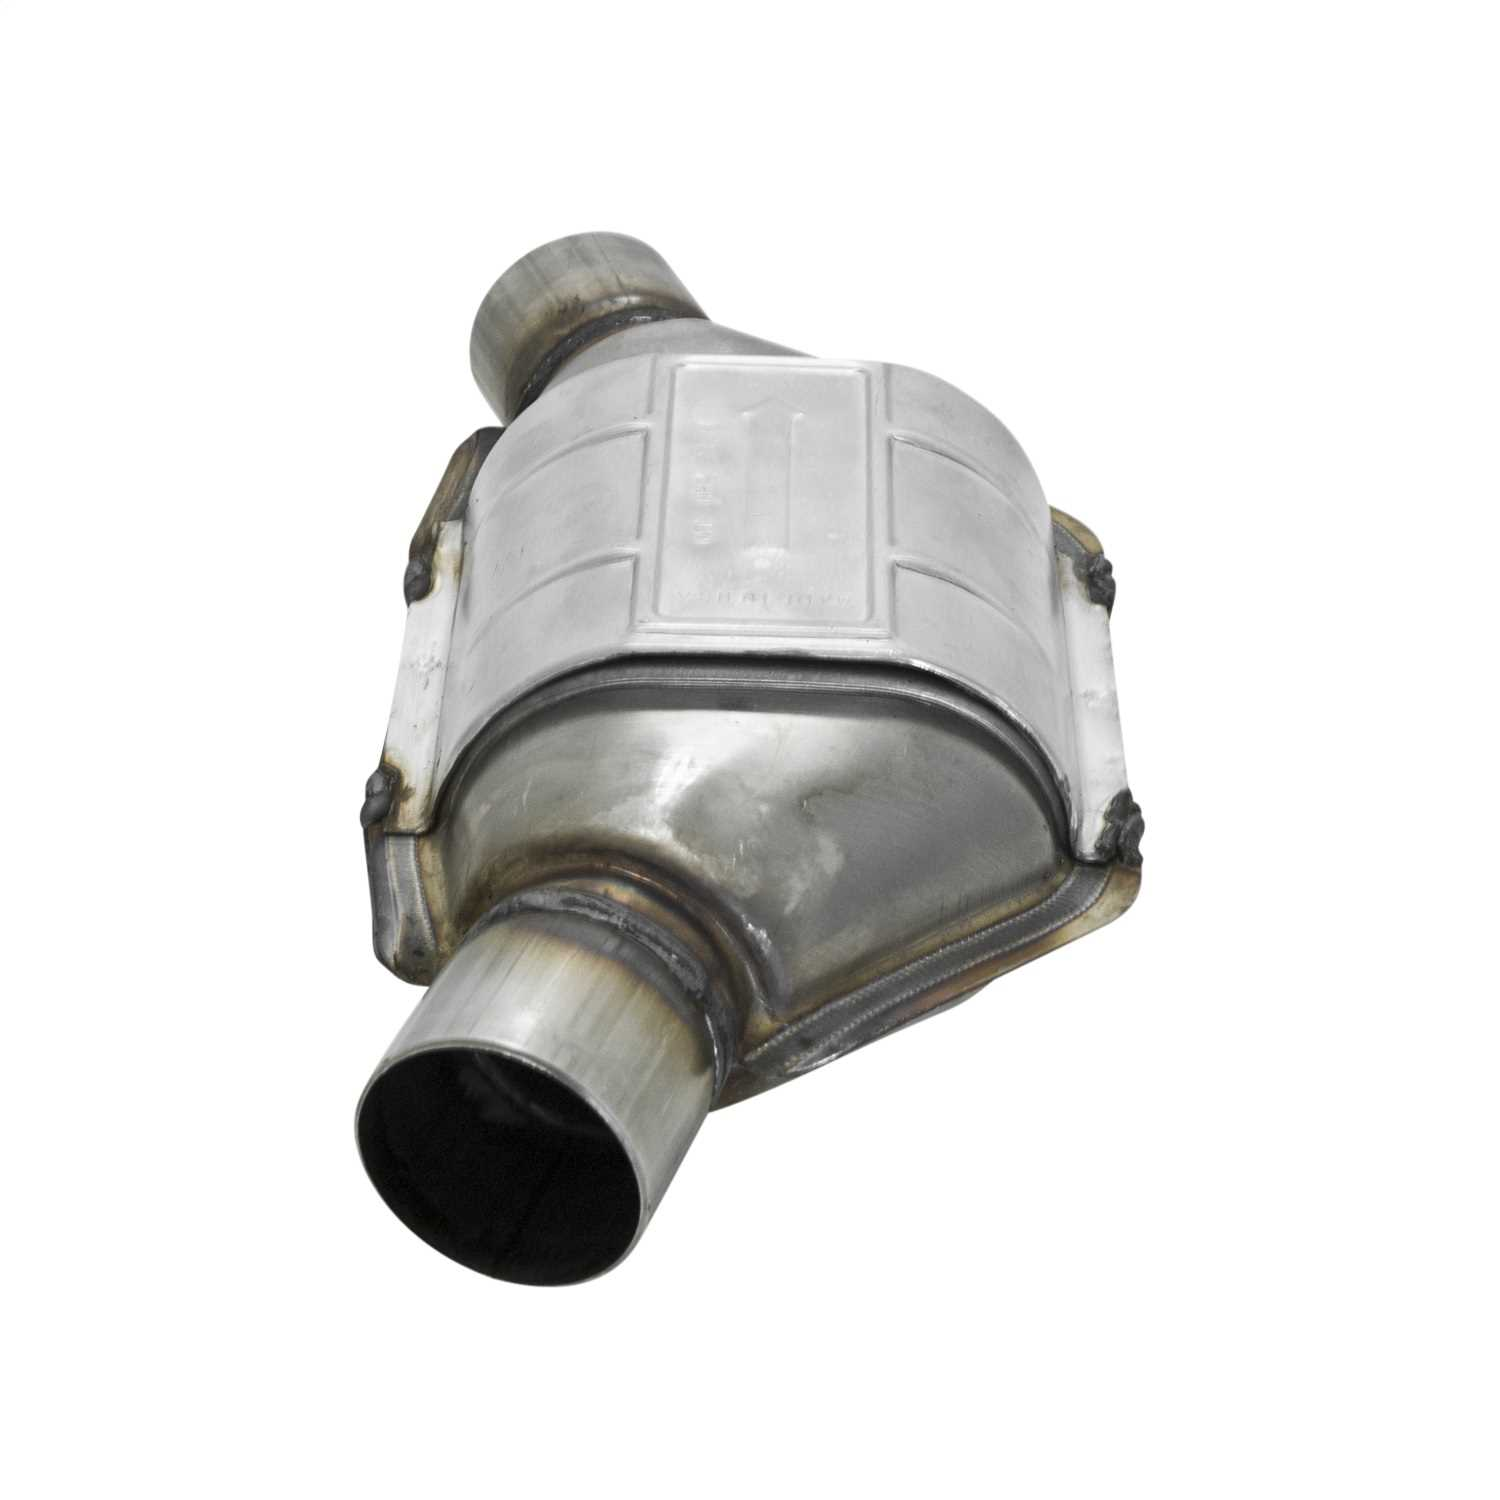 2821325 Flowmaster 49 State Catalytic Converters Universal Catalytic Converter